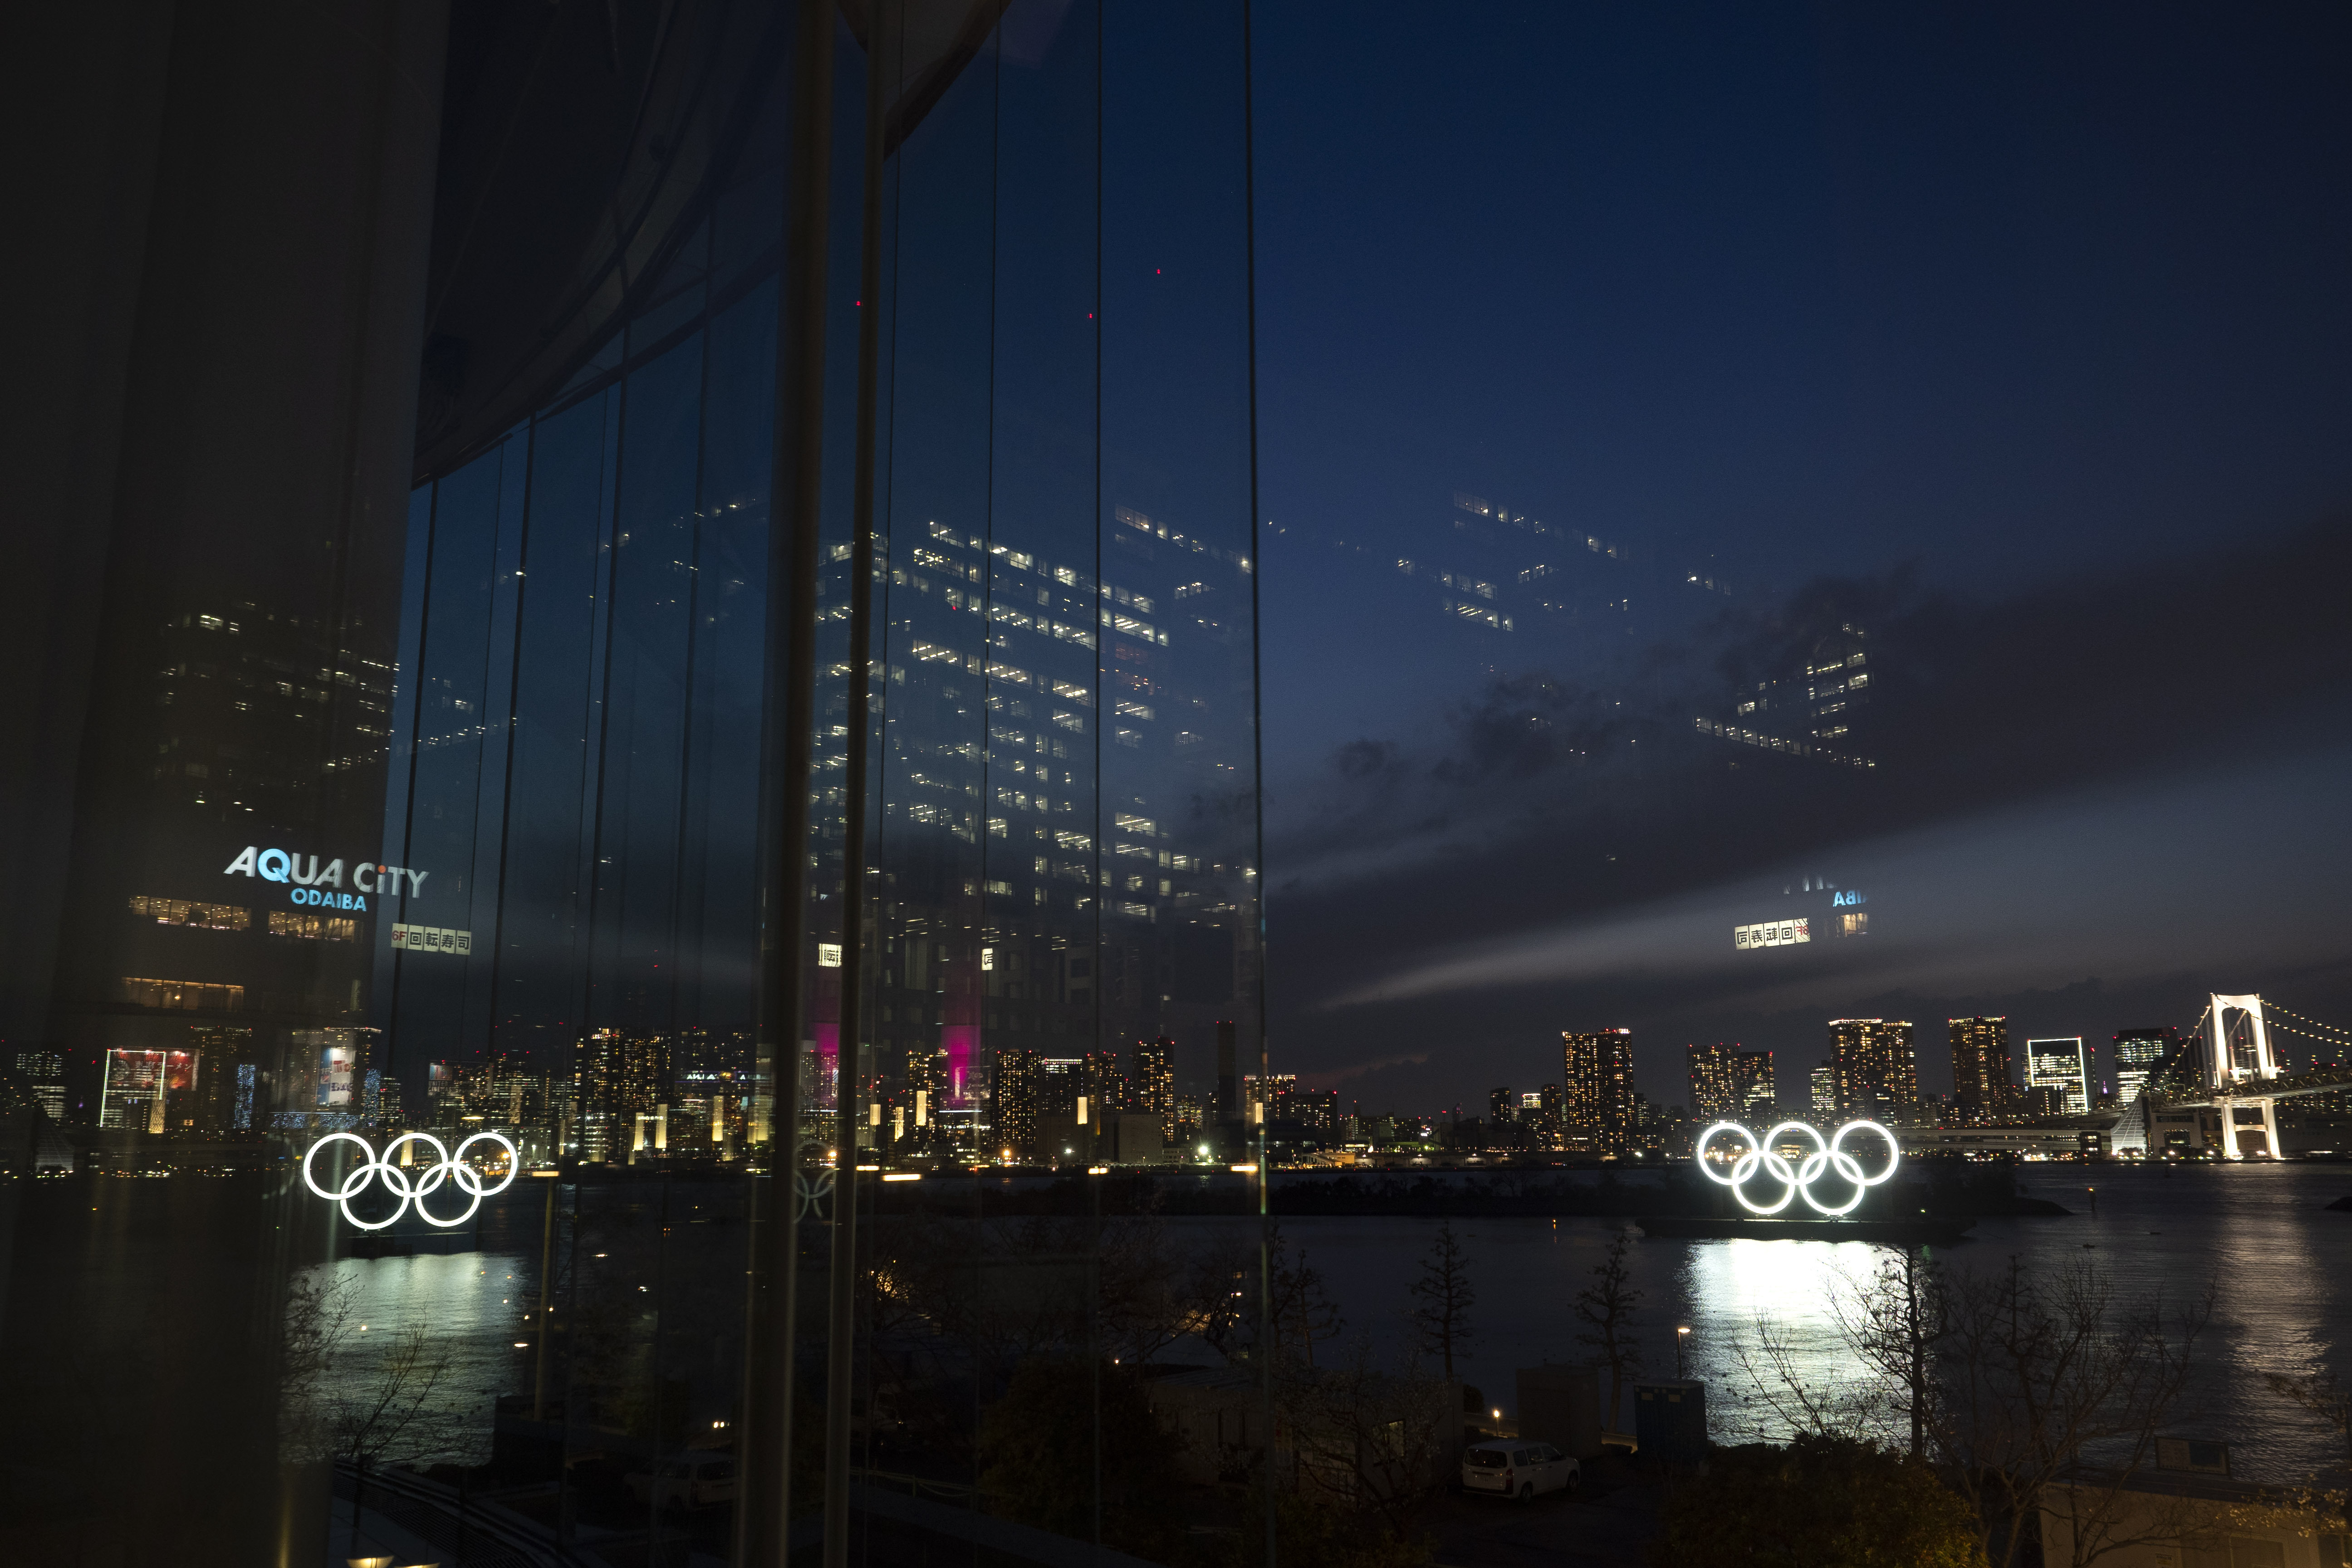 The Olympic rings are reflected in the glass wall of a wedding chapel in the Odaiba section of Tokyo, on March 23, 2020.